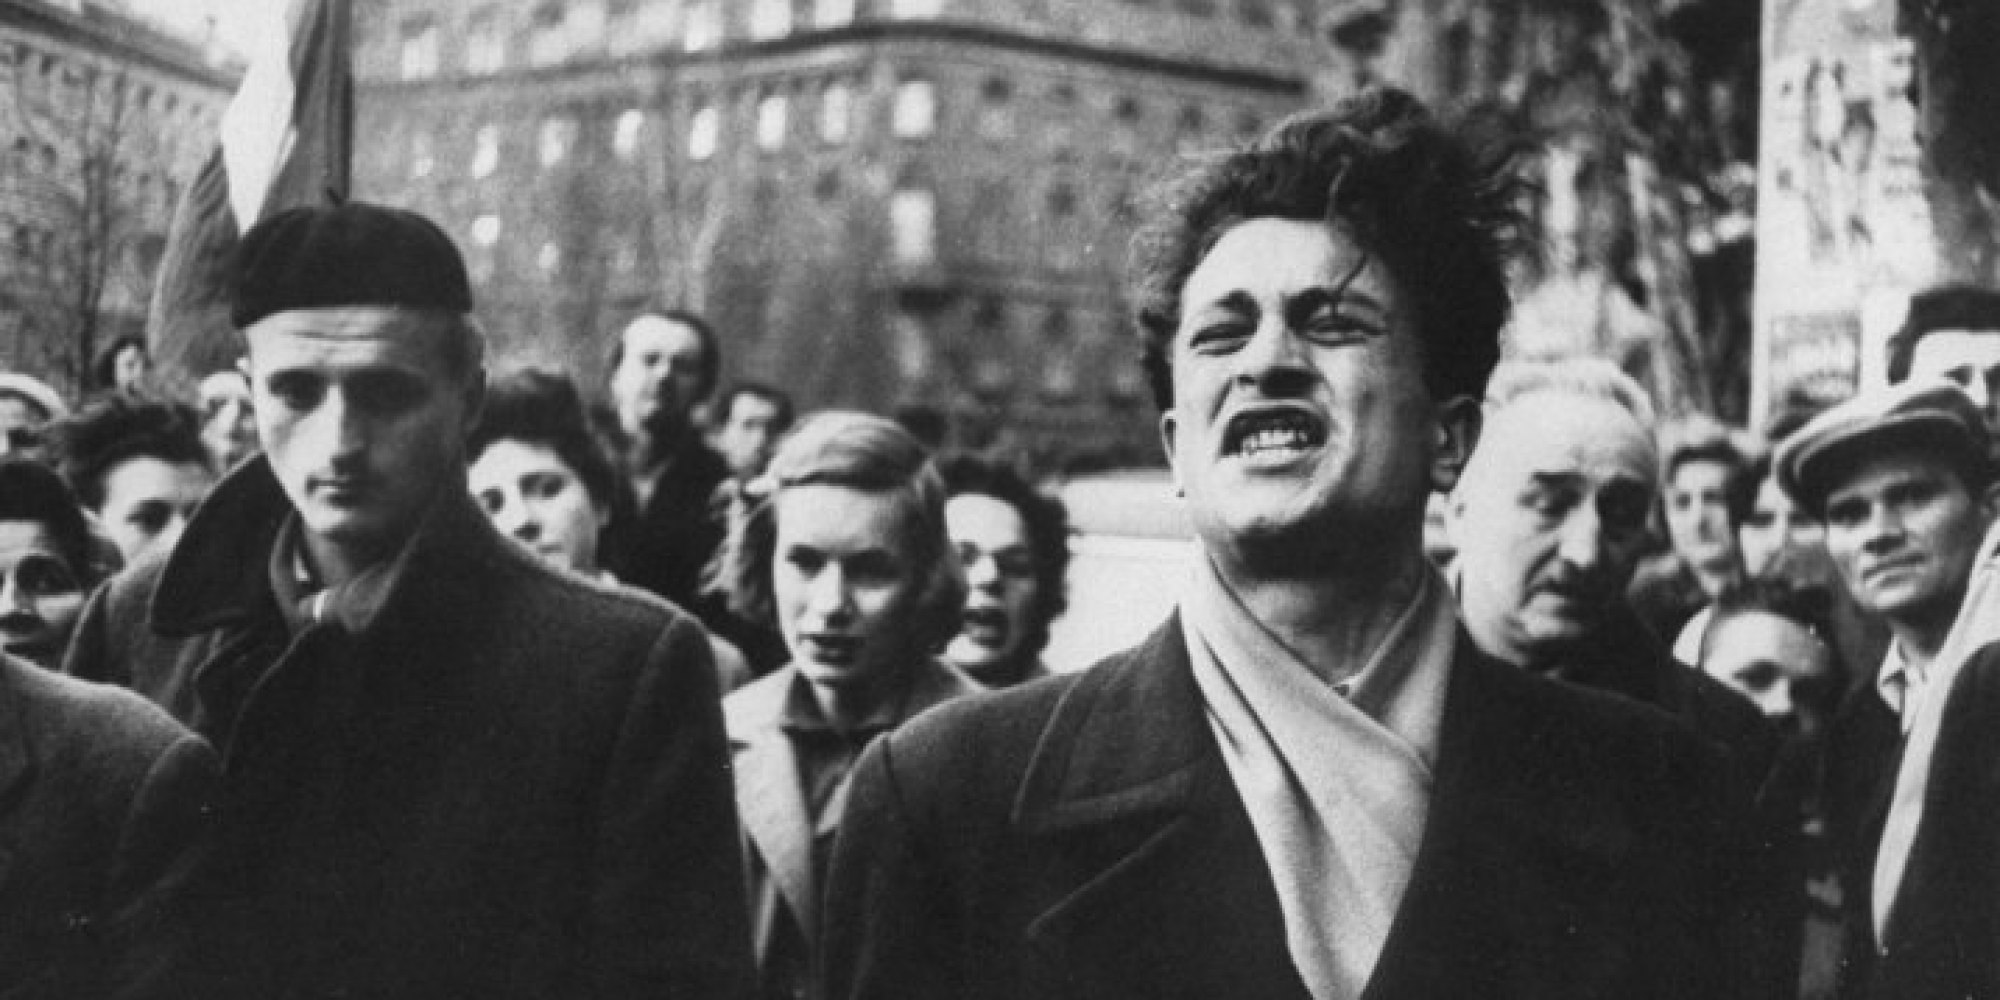 Striking Photos Of 1956 Hungarian Revolution Depict The Collective Power Of  A Soviet-Controlled People | HuffPost